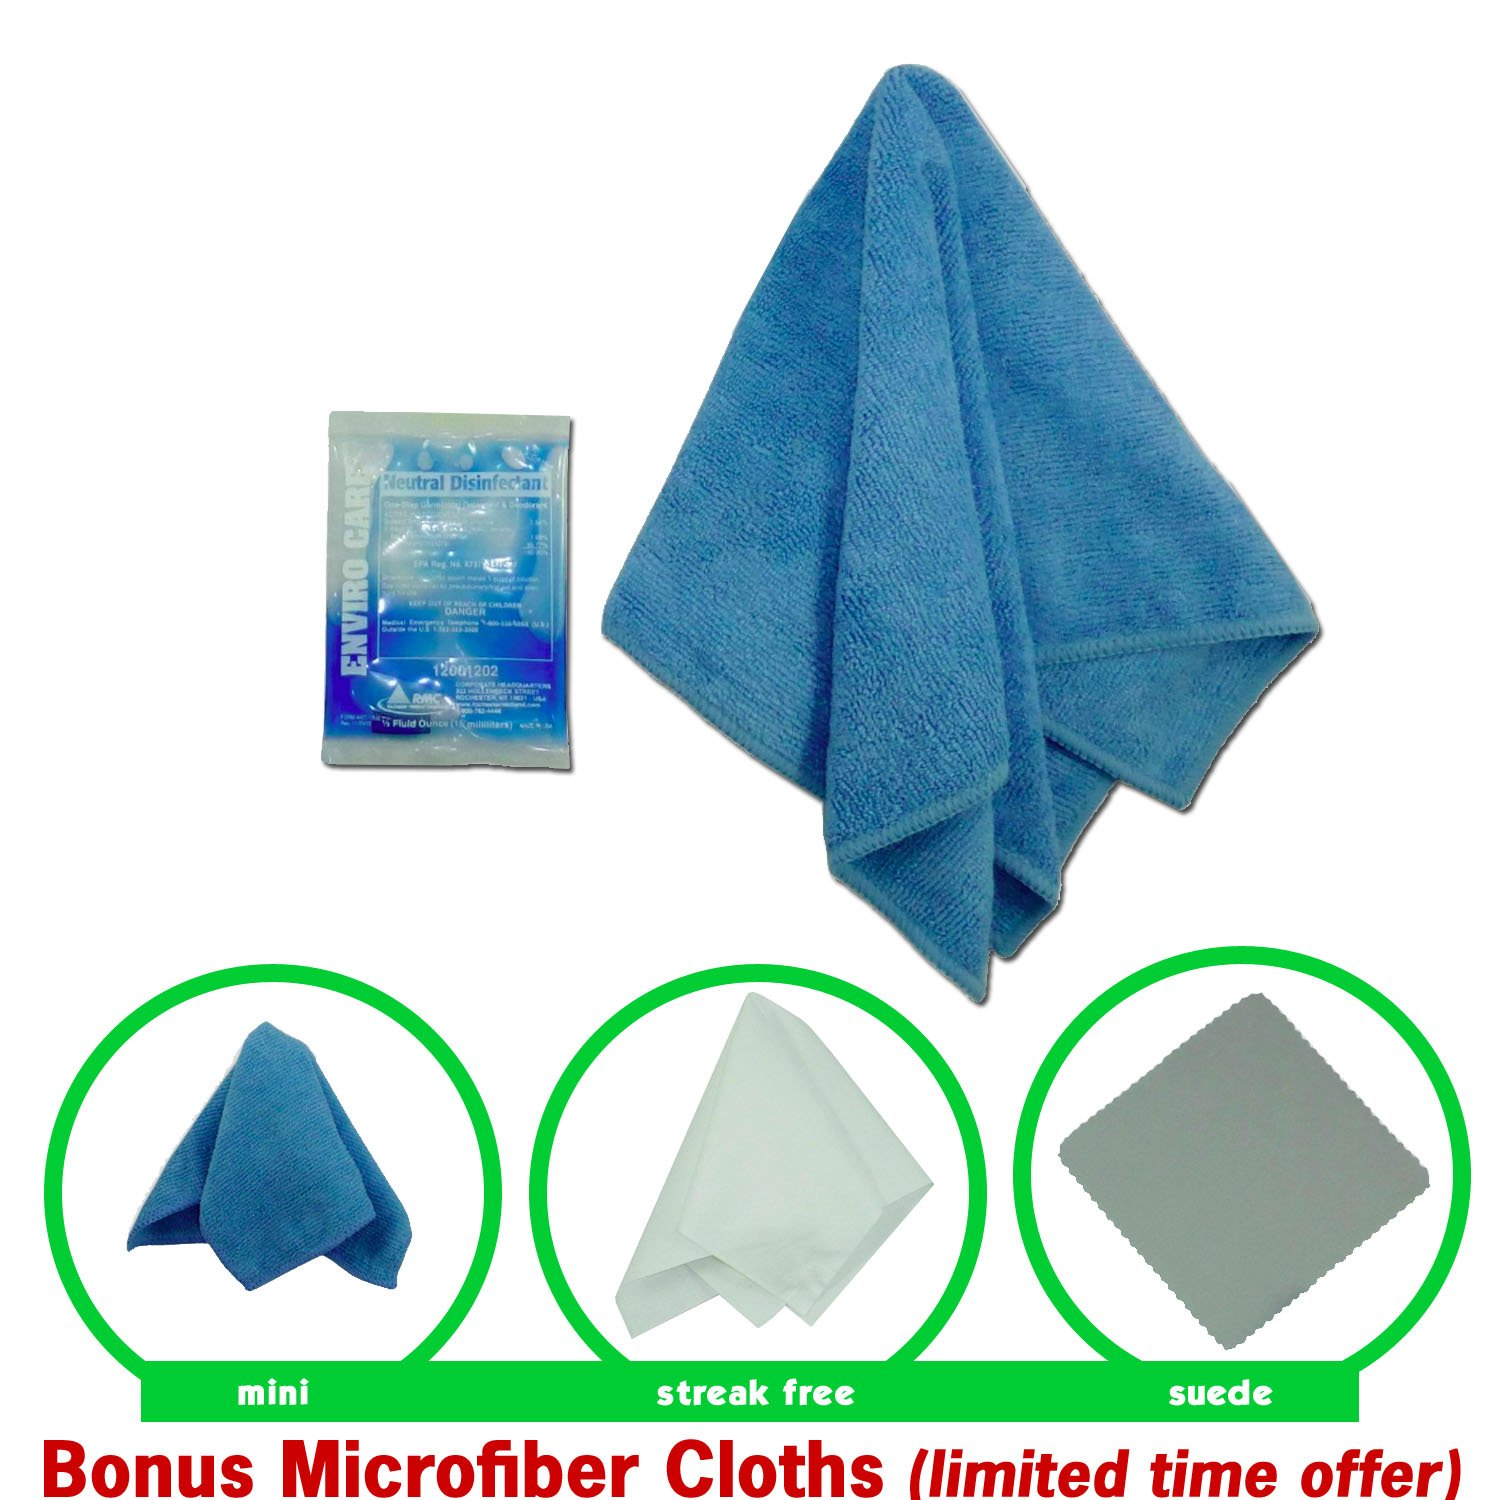 Reusable Disinfecting Wipes Kit: CleansGreen Microfiber Cloth, Hospital Disinfectant Cleaner|Best as Sanitizer Spray for Baby, Pets, Electronics, Phones, Travel, Kitchen, Bath-BONUS 3 Specialty Cloths